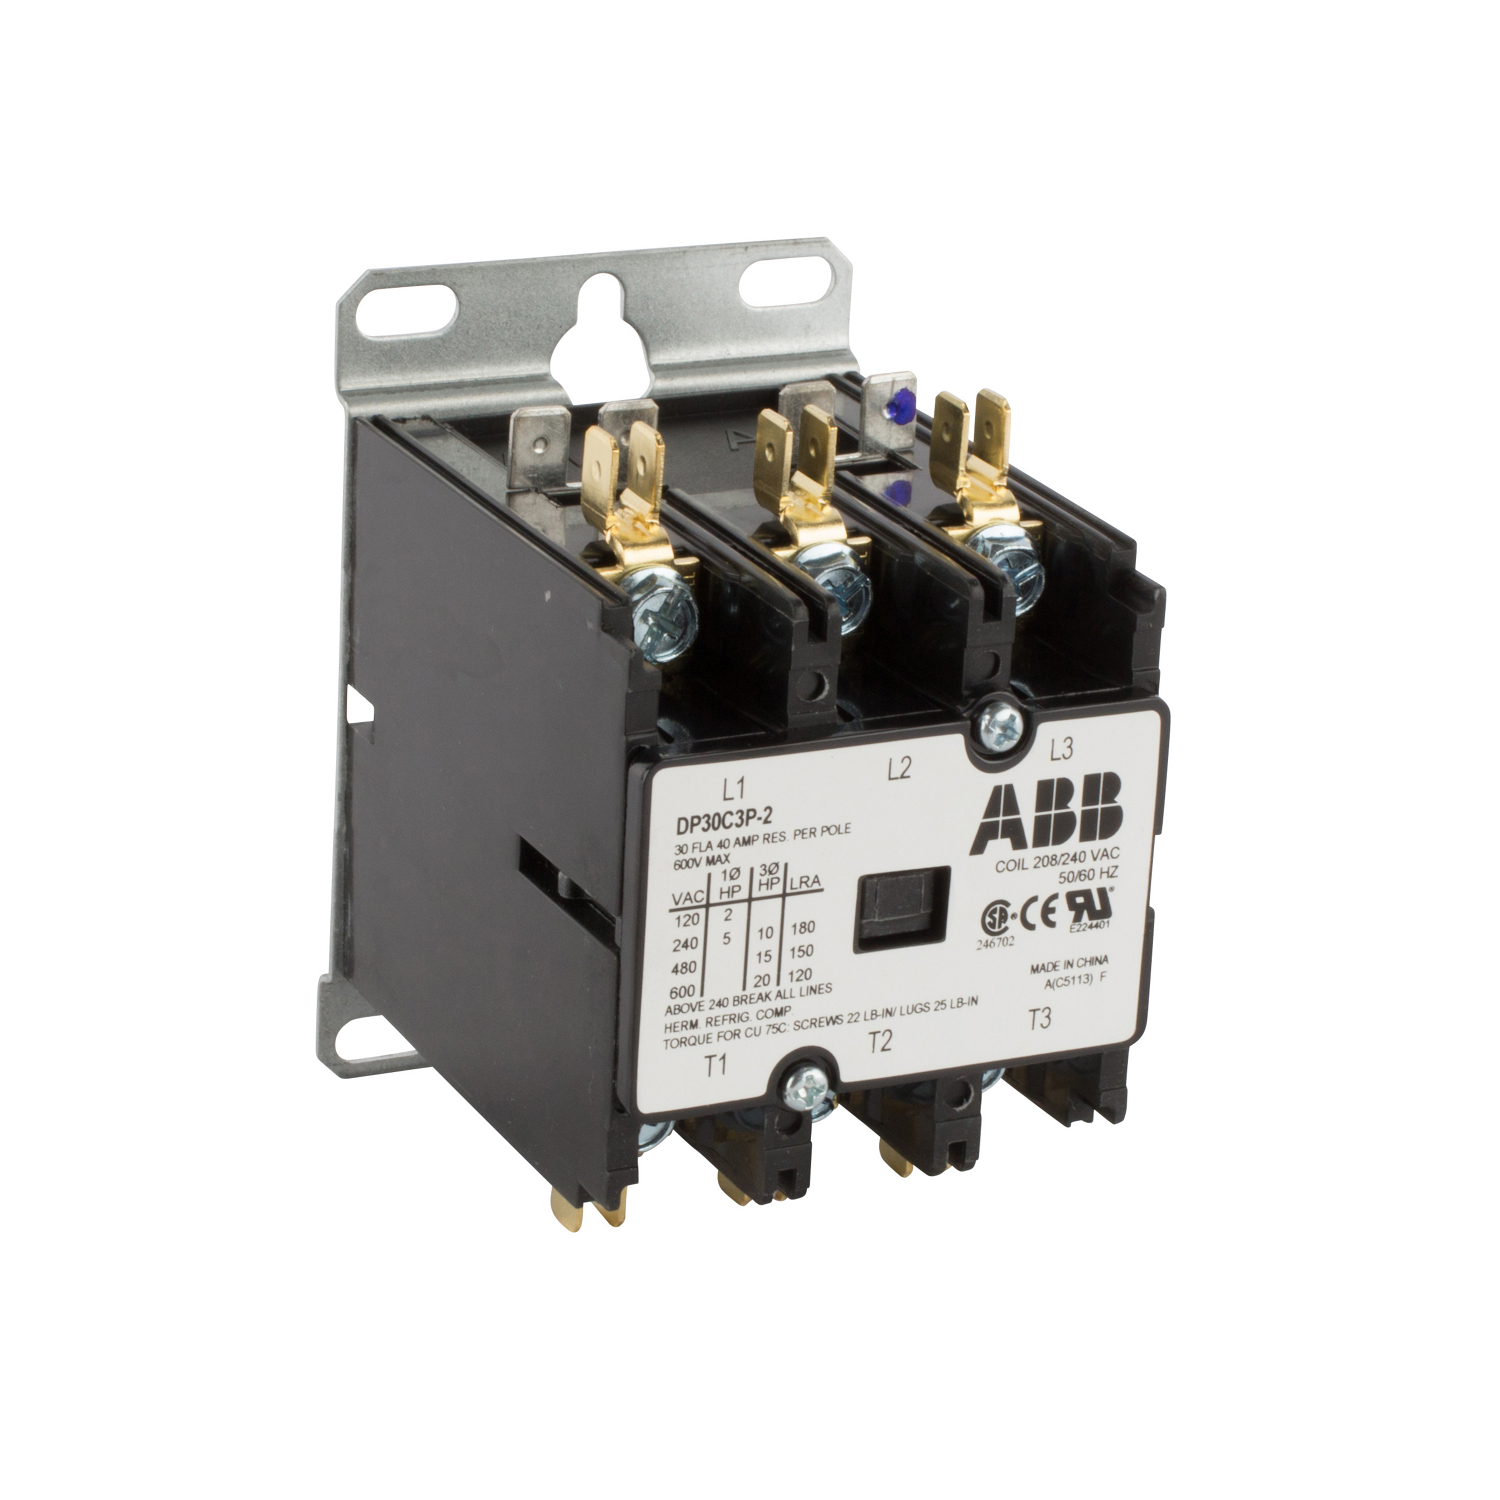 ABB DP30C3P-2 DPCONTR,30A,3P,240 / 208 30 Amp, 3-Pole, Definite Purpose Contactor, 600V Rated, Screw Terminals, 208/240V AC Coil. **THESE CONTACTORS ARE NOT RECOMMENDED FOR USE ON LIGHTING CIRCUITS, IF THEY ARE USED ON LIGHTING CIRCUITS, THEY WILL NOT BE COVERED UNDER WARRANTY**